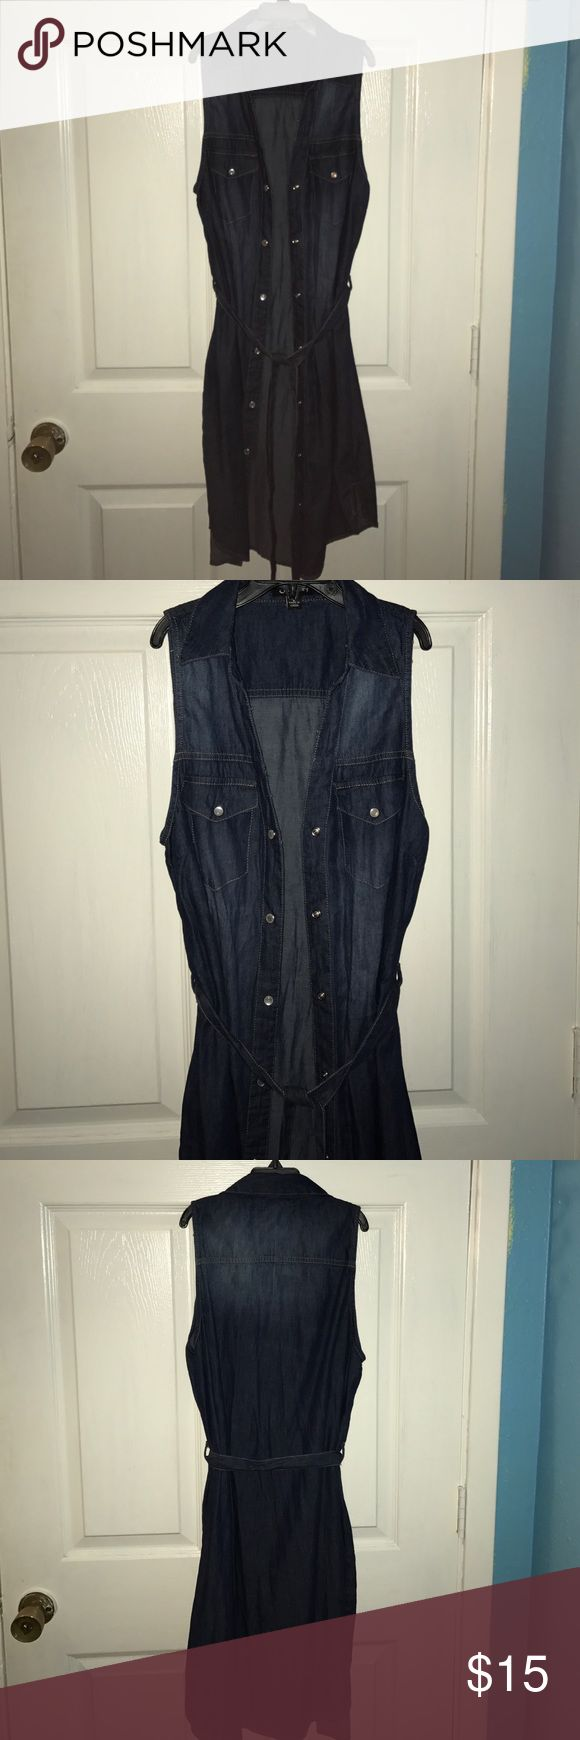 Denim Shirt Dress Sleeveless denim shirt dress in very good condition, never worn! Size S. ❤️ Dresses